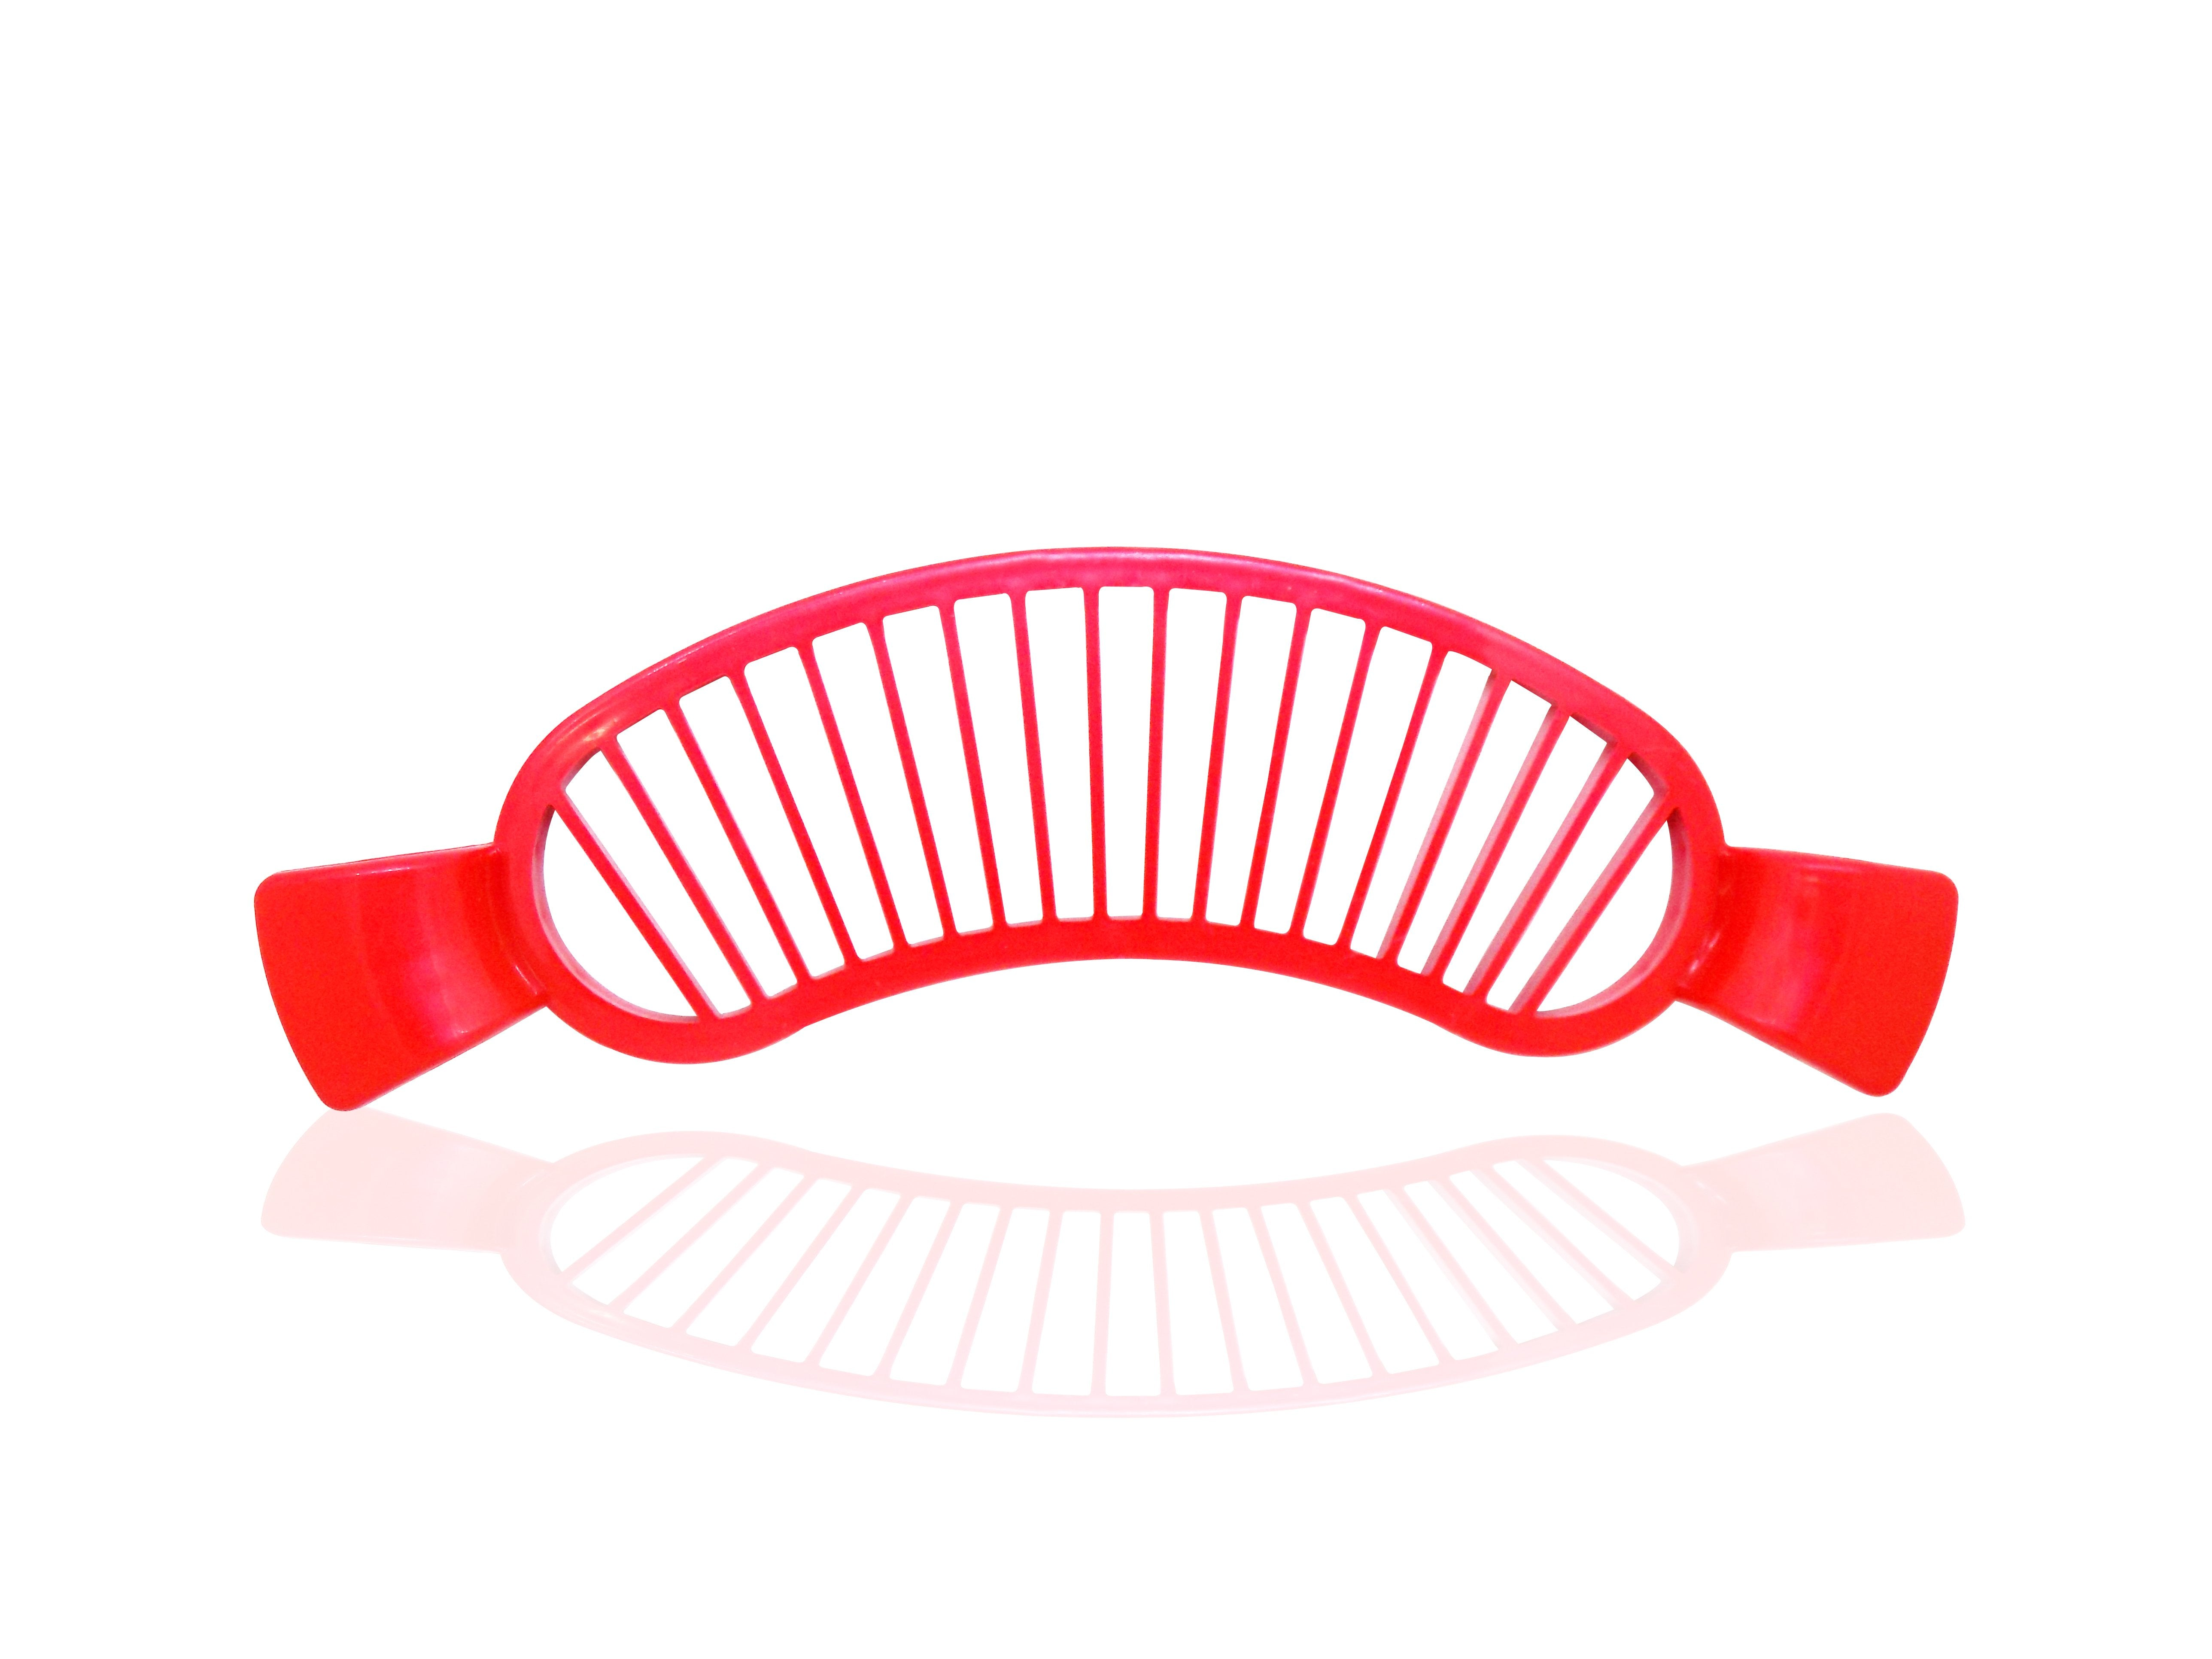 2084 Plastic Banana Slicer/Cutter With Handle